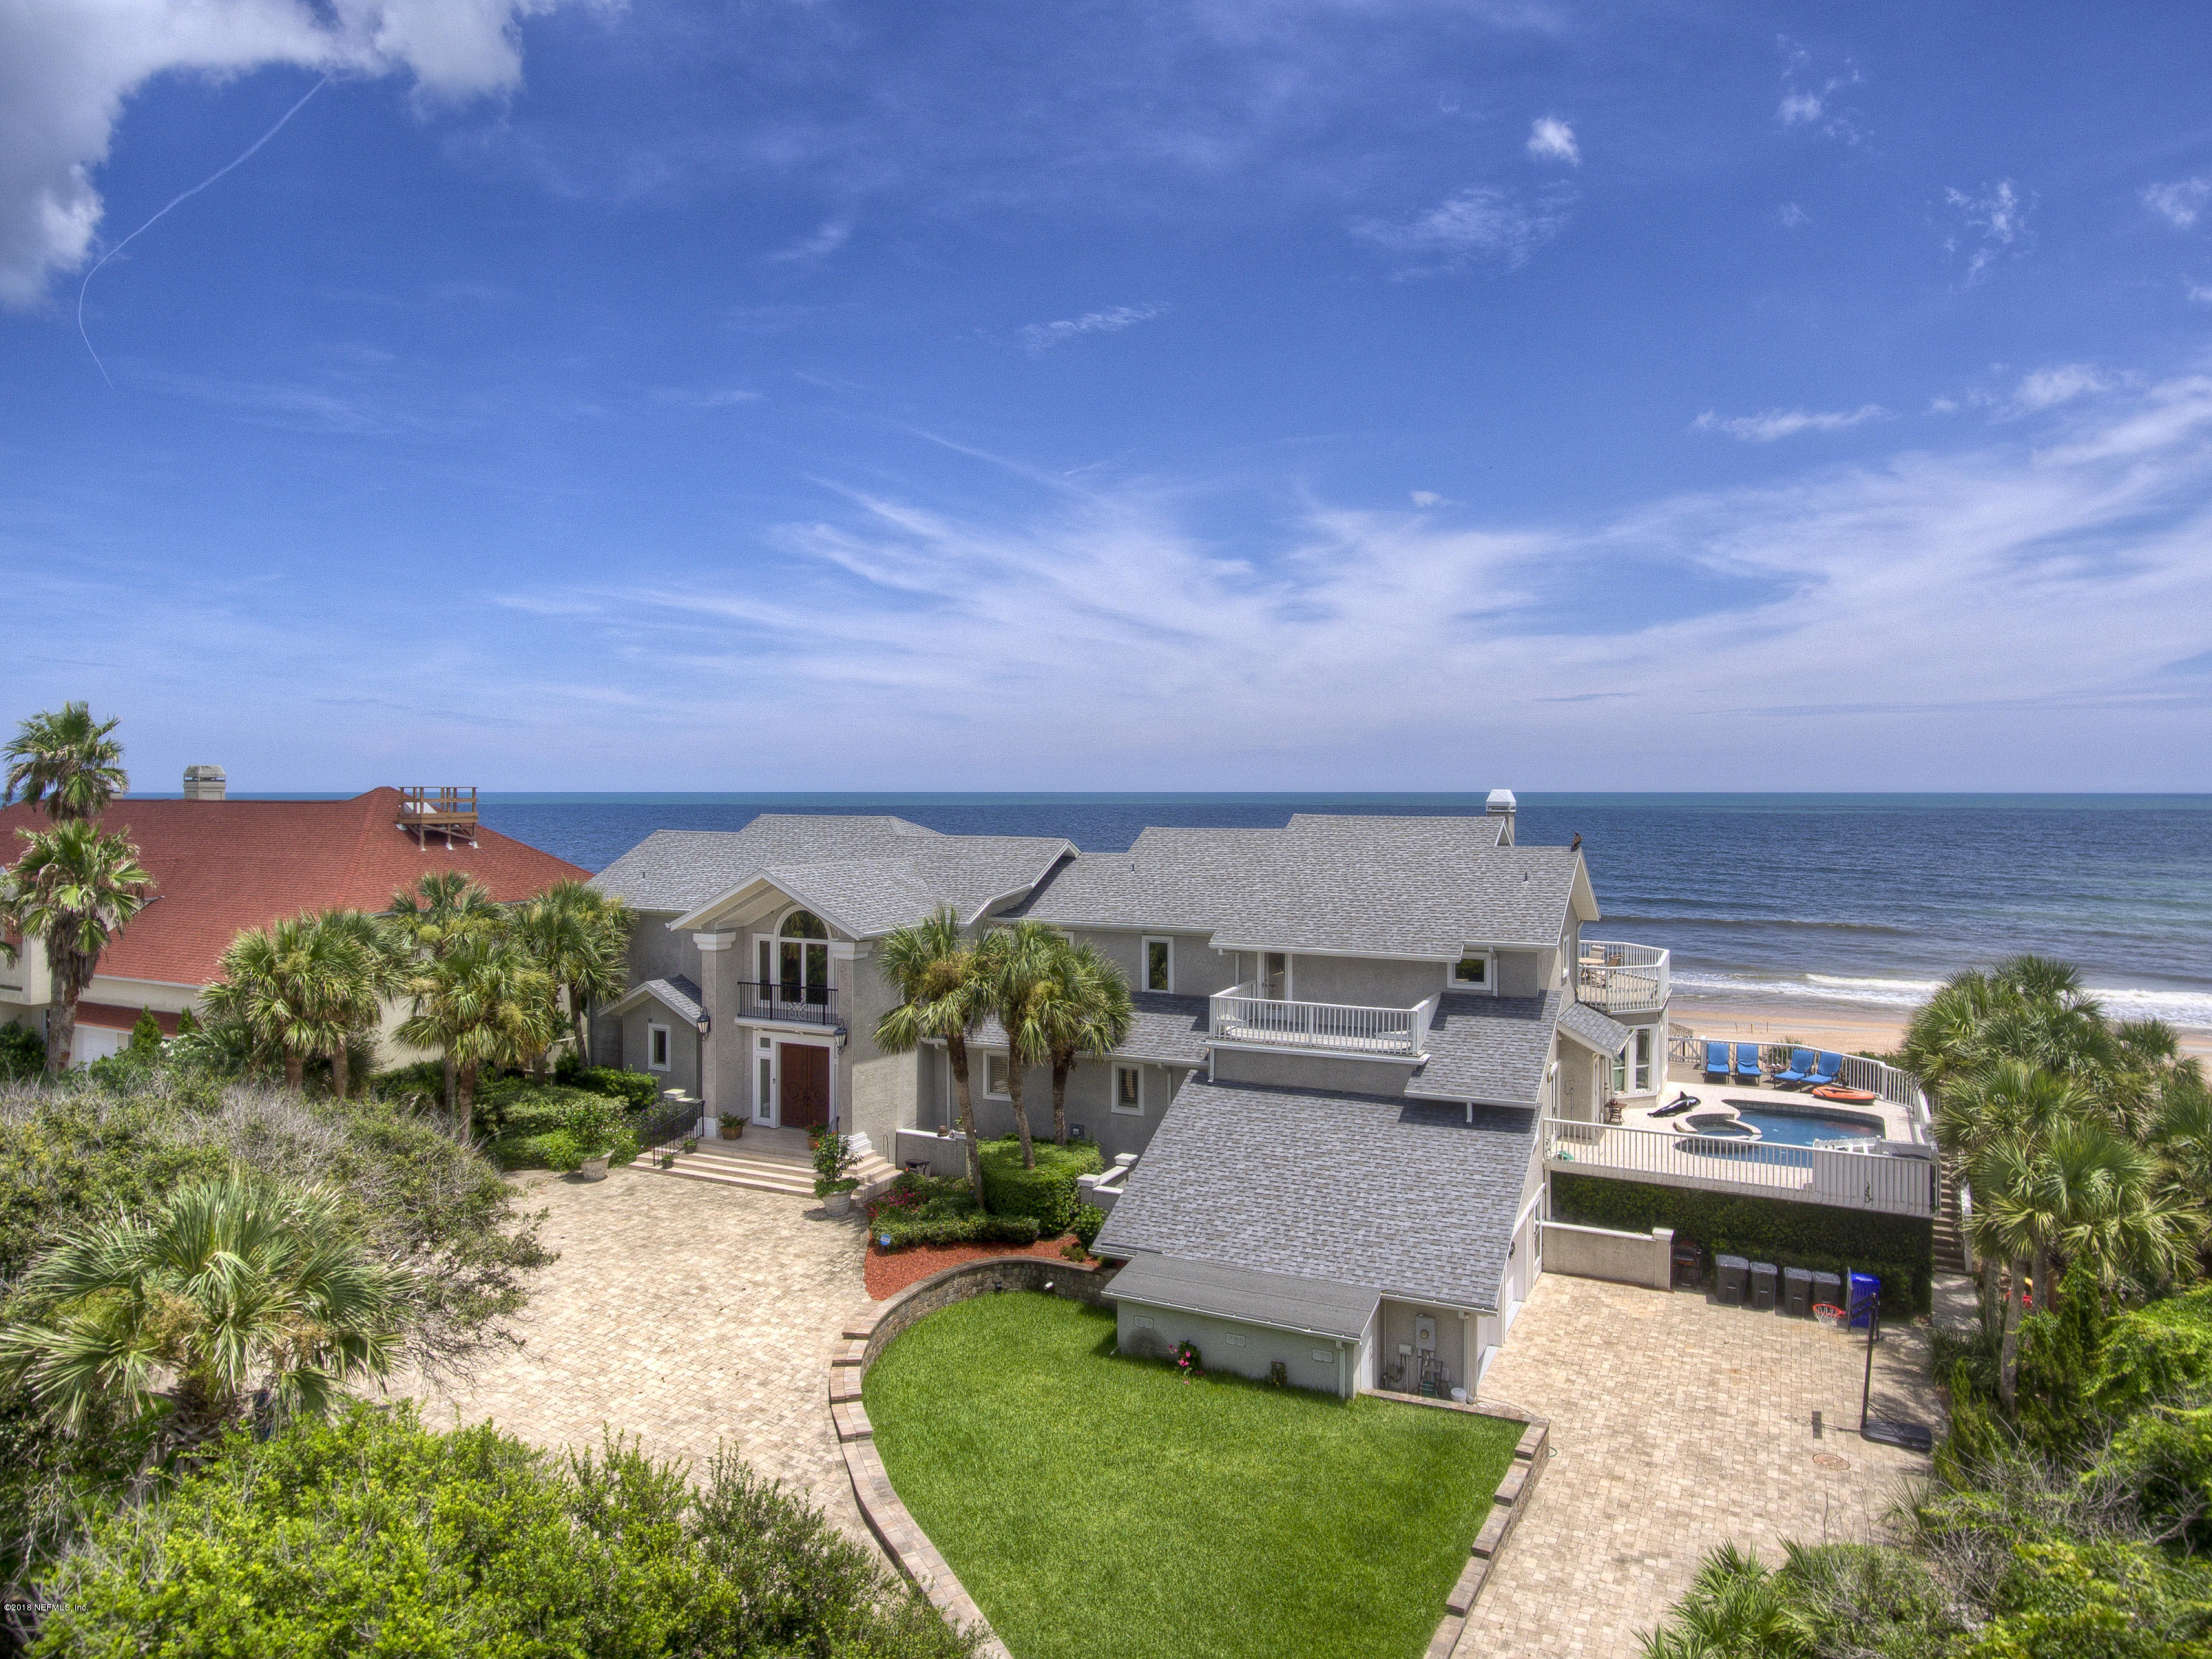 1407  PONTE VEDRA BLVD, one of homes for sale in Ponte Vedra